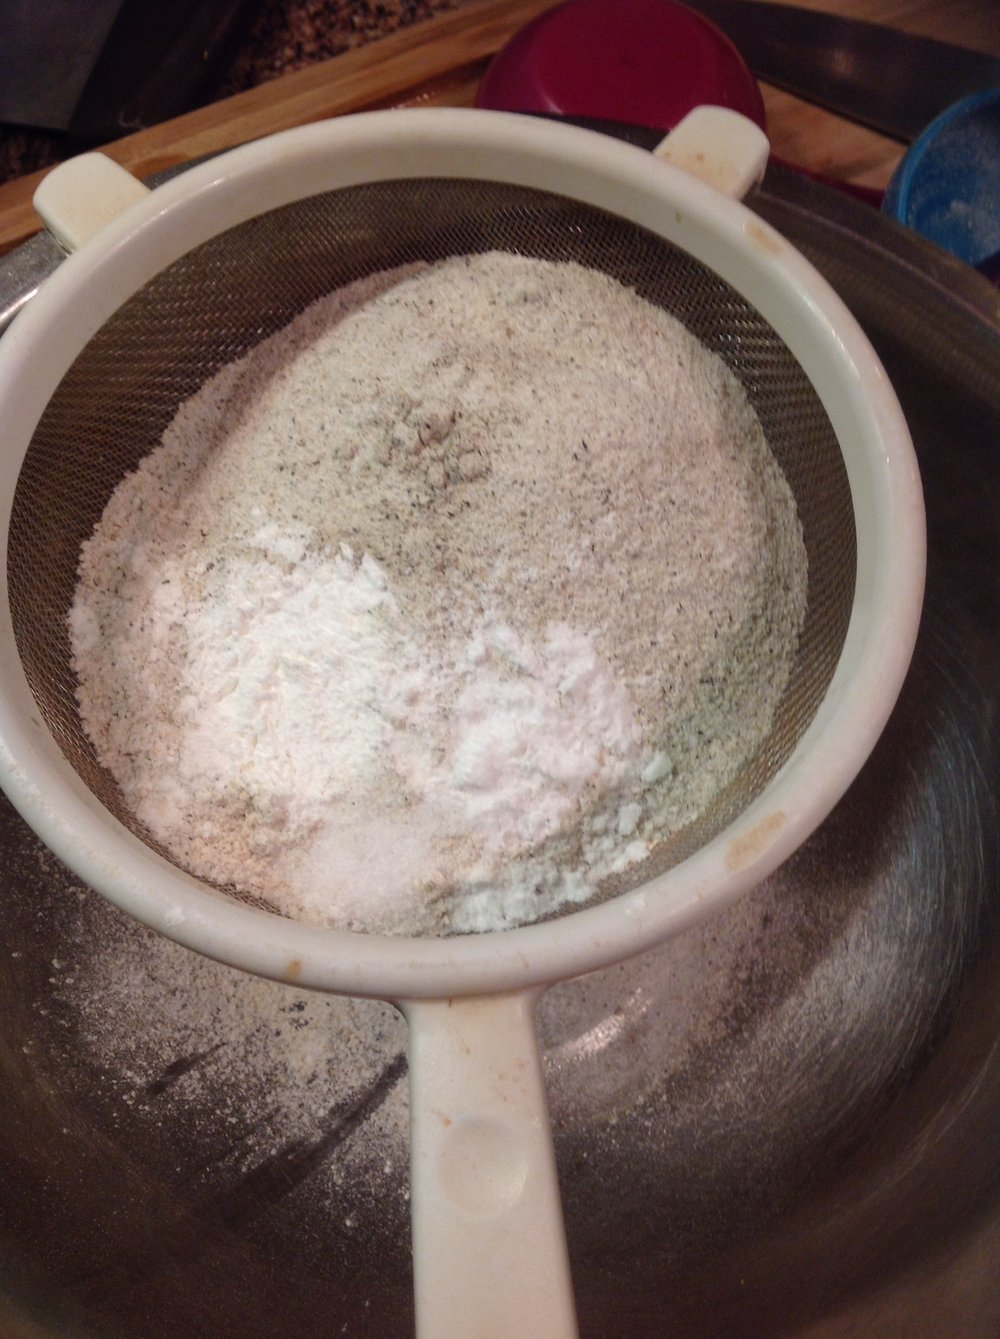 Chef's Baking Tip:  Always sift together your dry ingredients to remove any lumps and create a lighter, fluffier batter